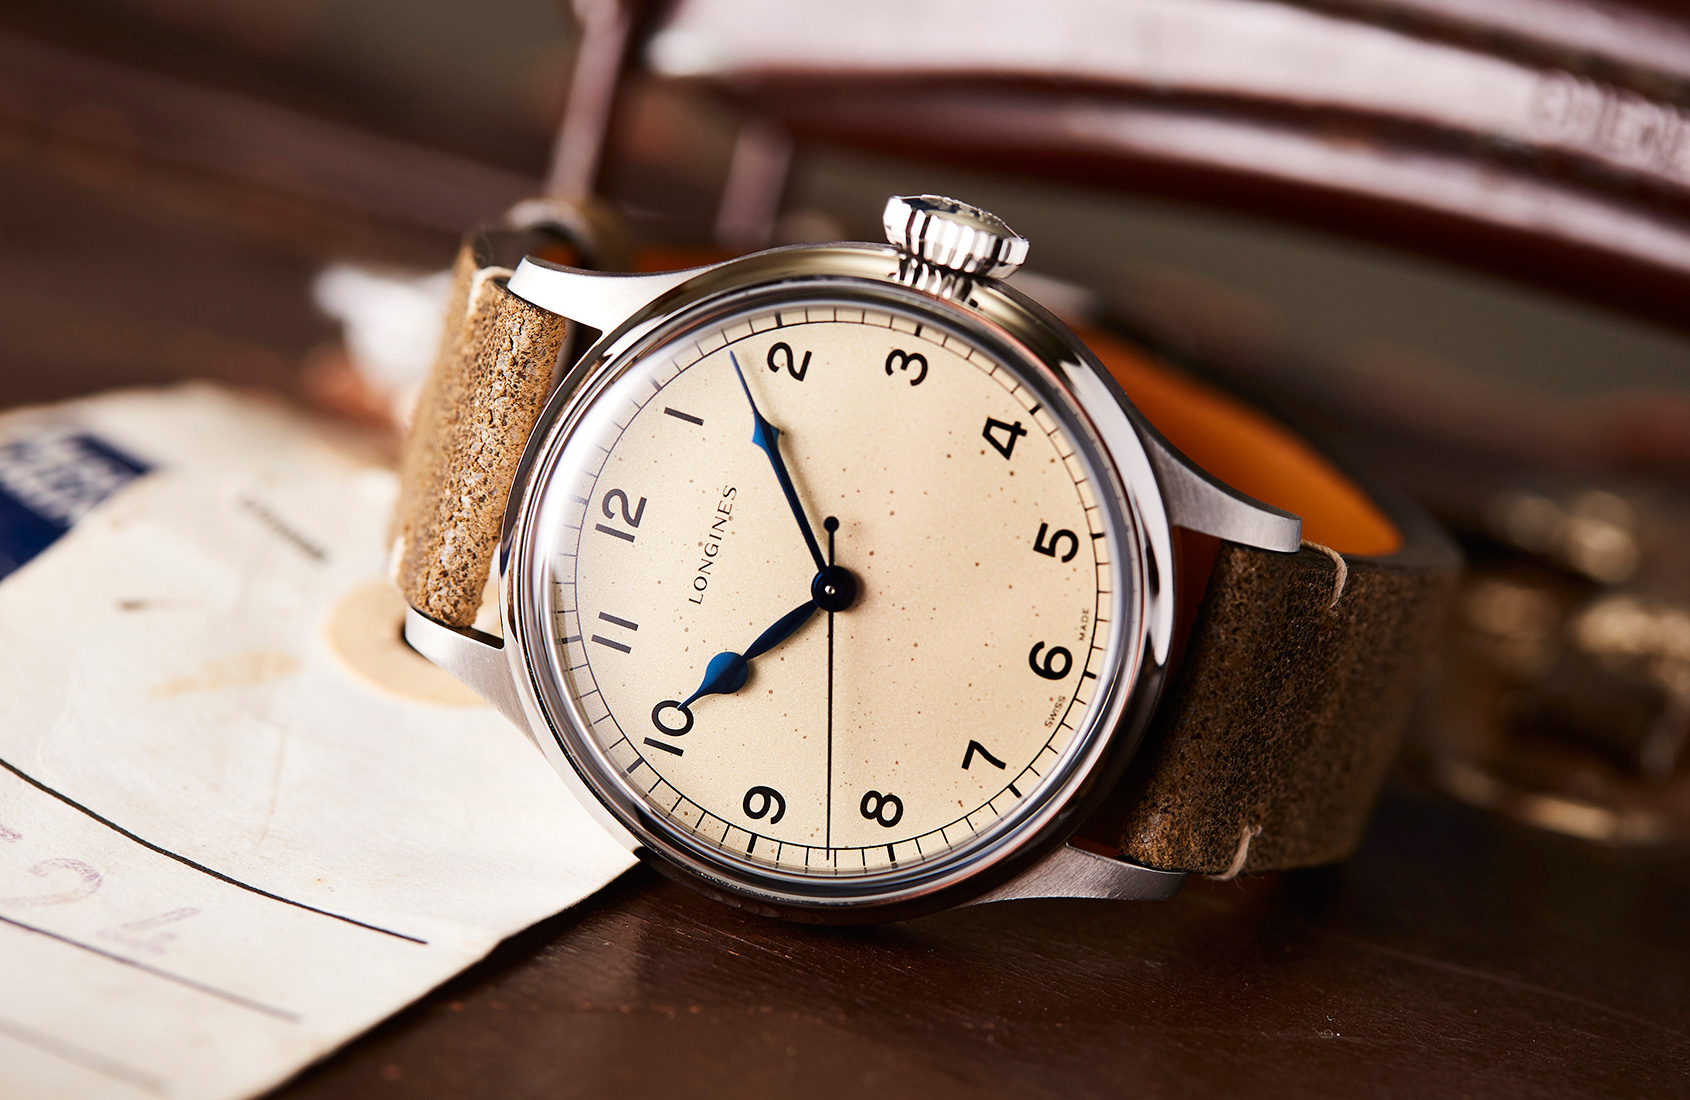 6 milestones / gifting occasions that you should buy a watch for (that also make good excuses to buy for yourself)